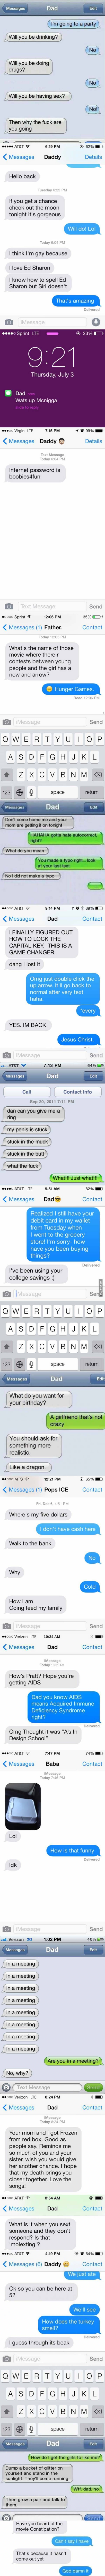 Dads + Texting = Hilarity